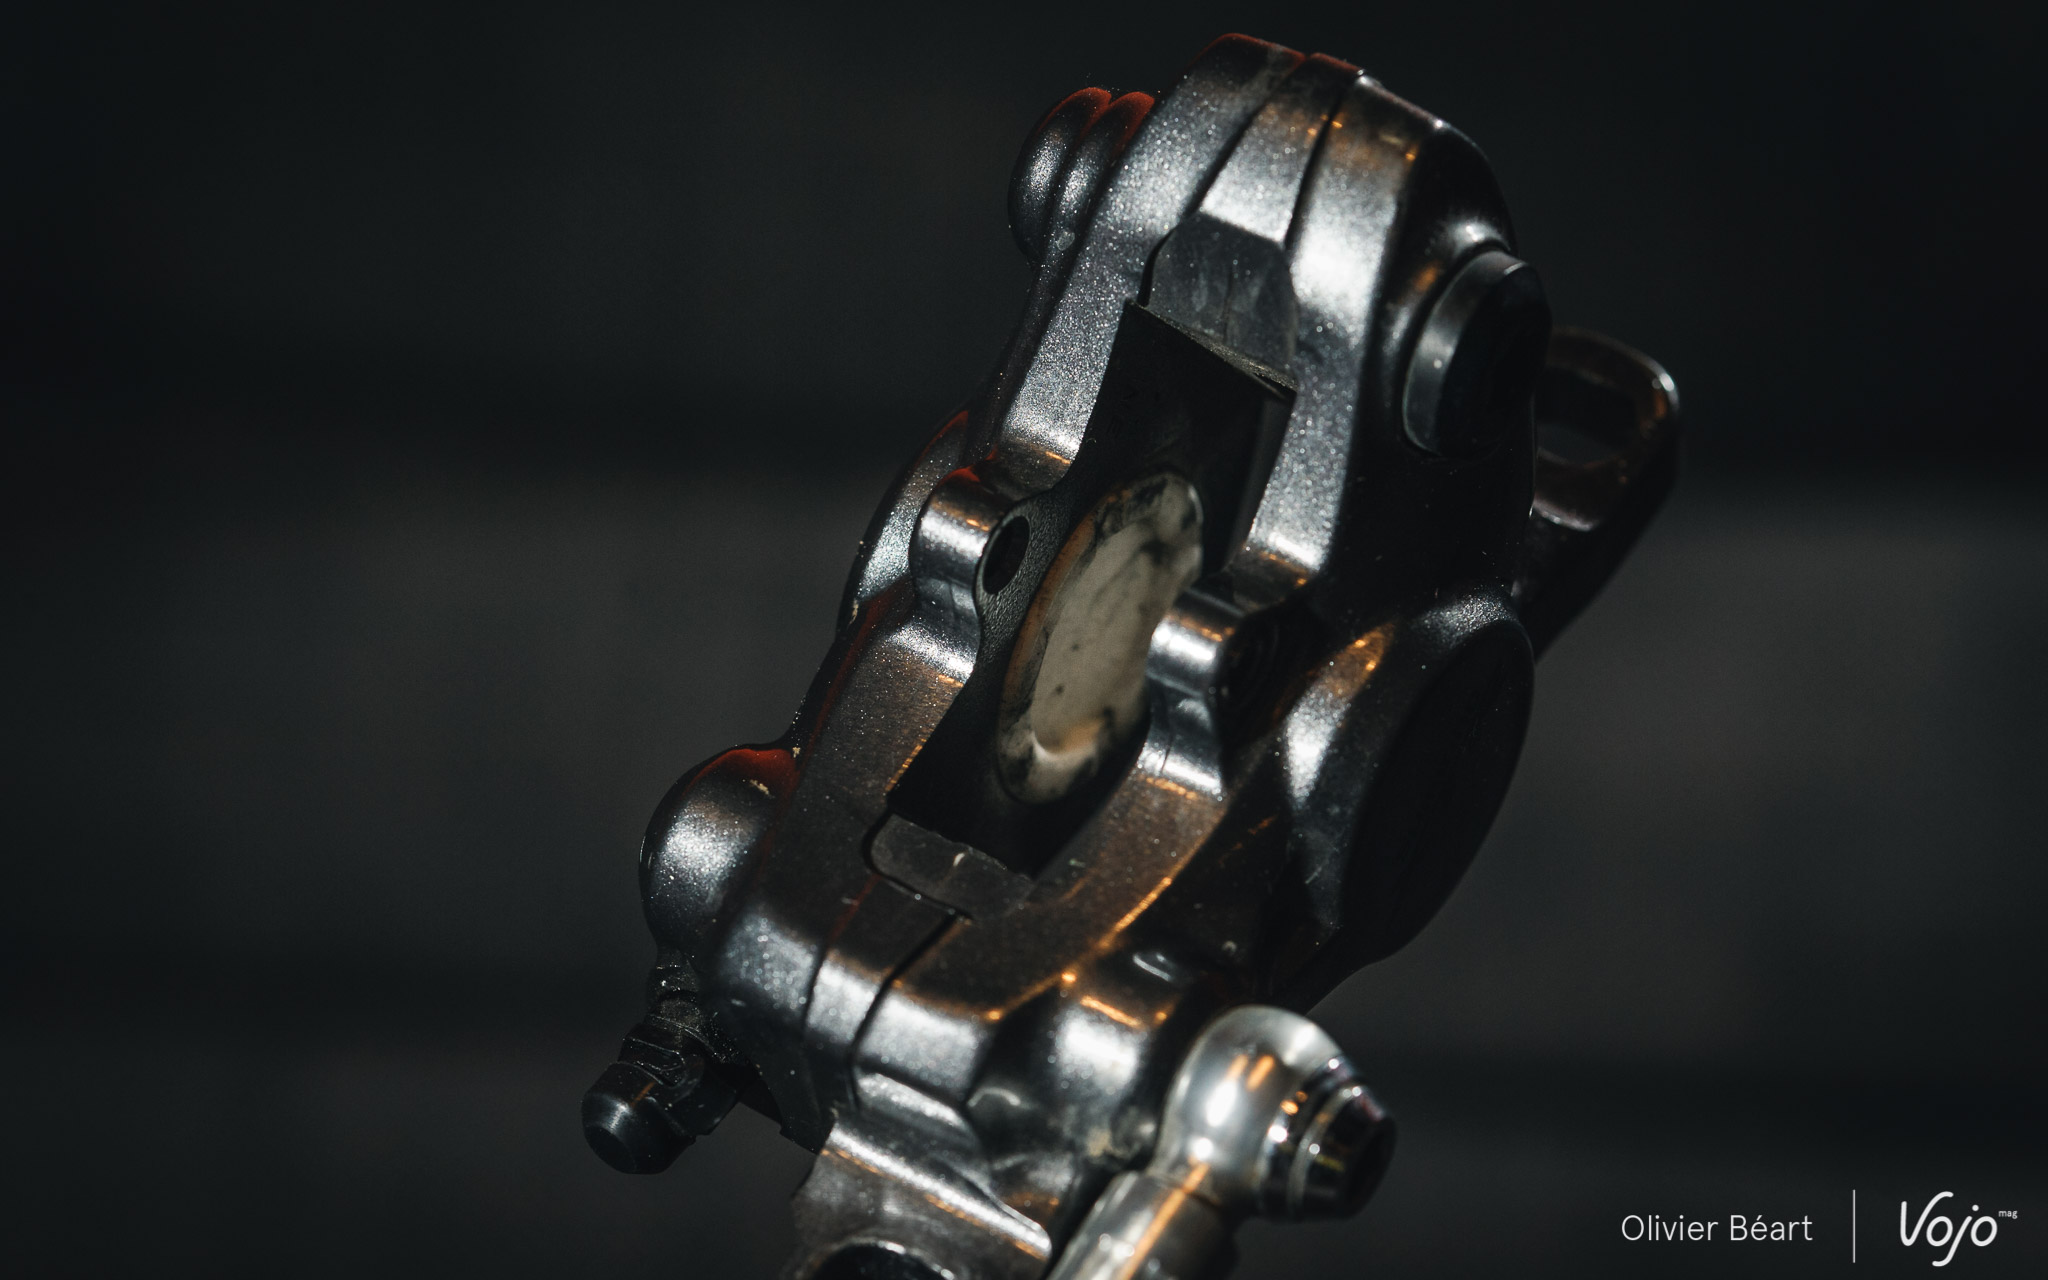 shimano_xtr_freins_test_details_weight_copyright_obeart_vojomag-20